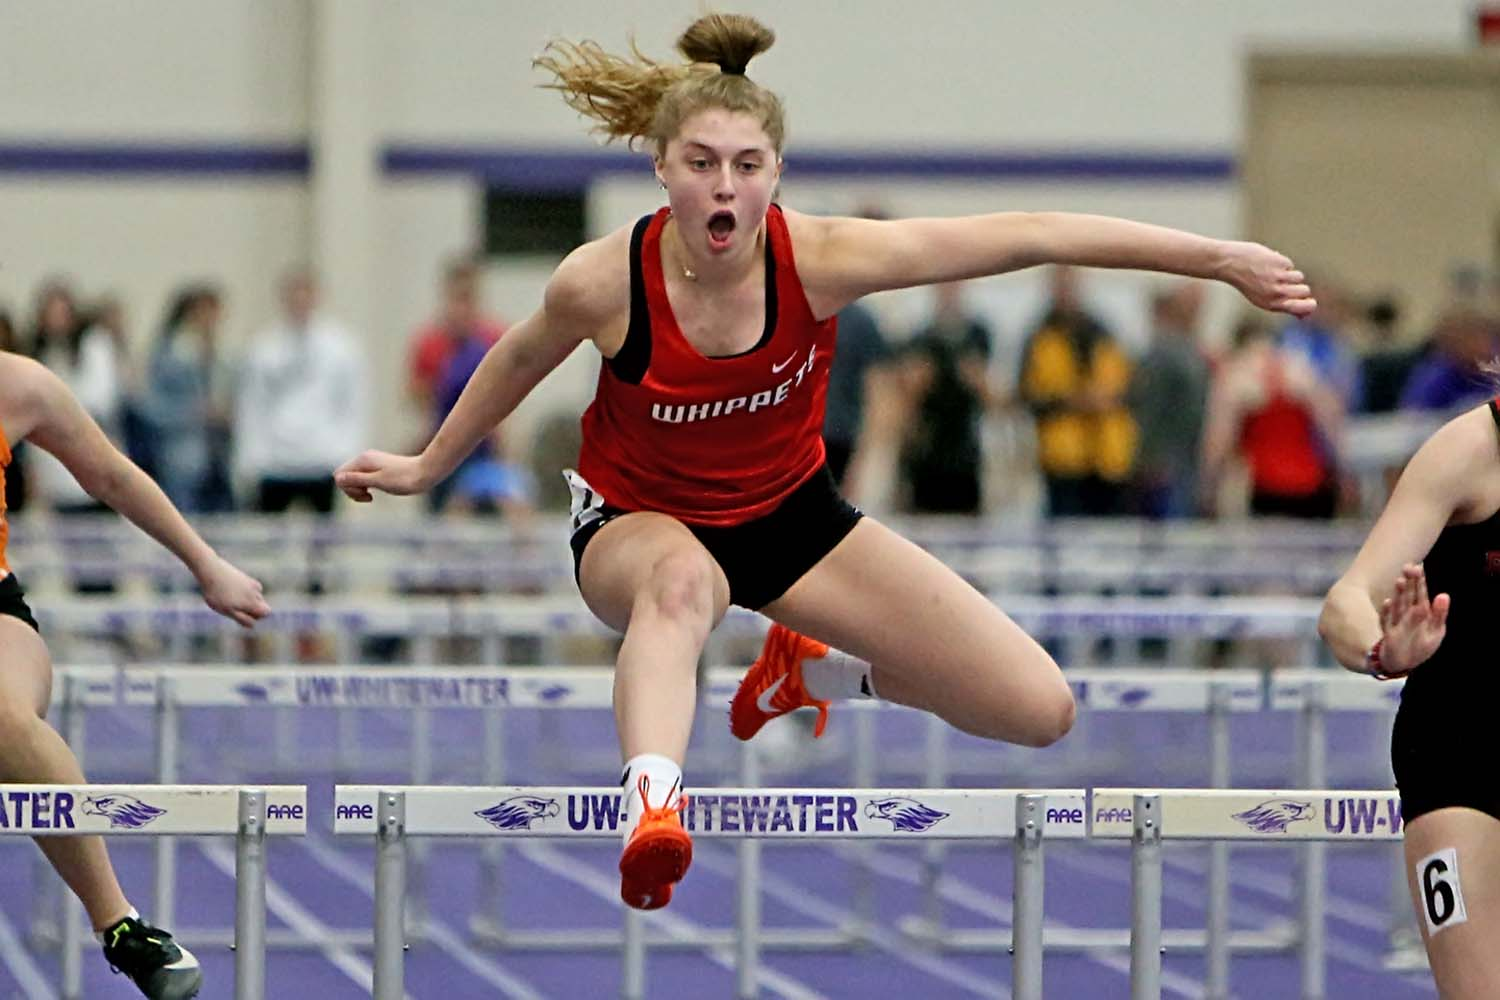 Emme Bullis was 6th (out of 28) in the 55 Meter Hurdles.